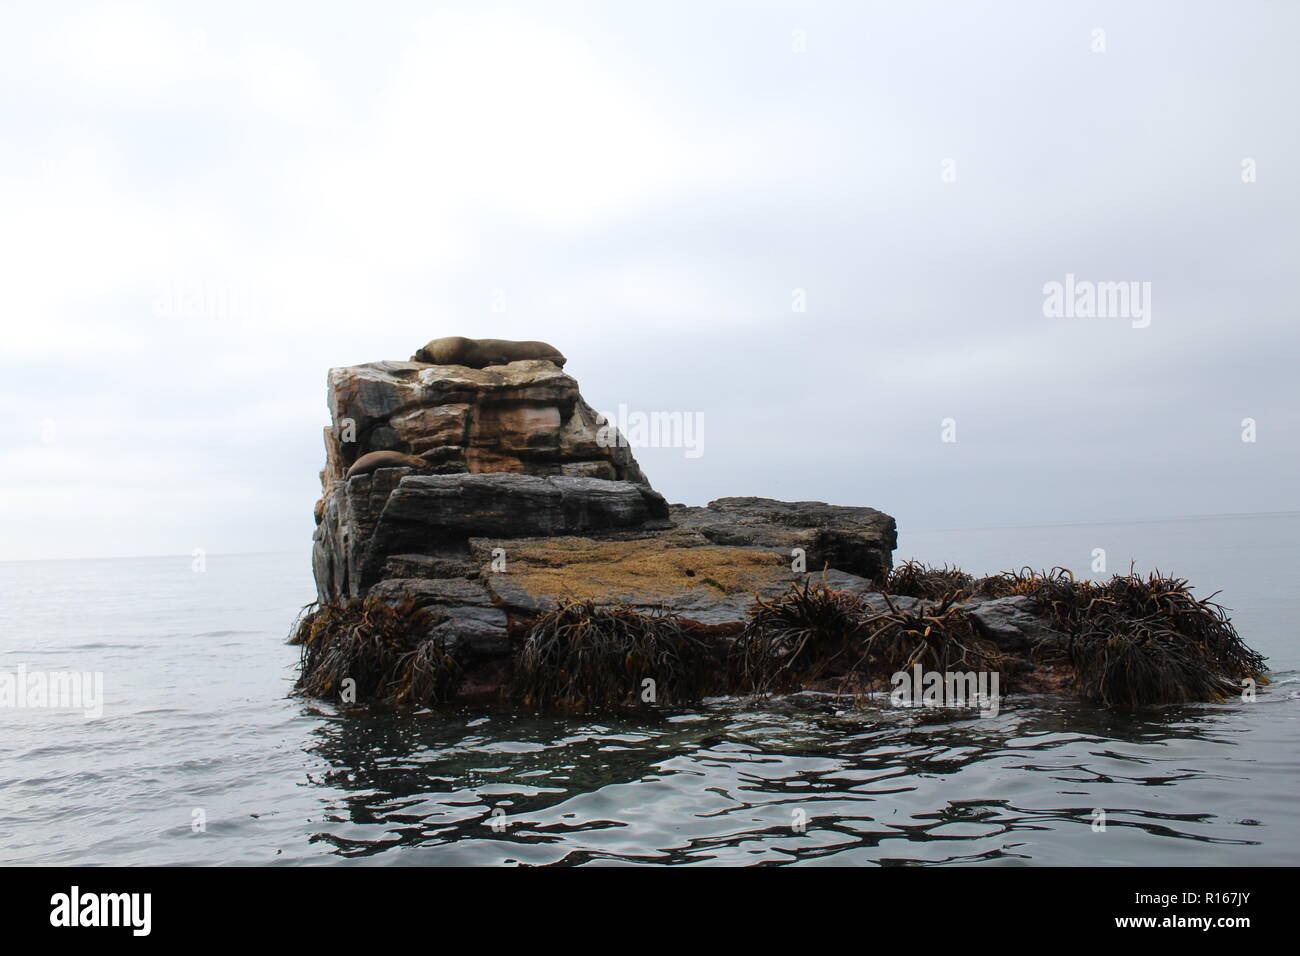 Sea wolf sunning itself on rocks in the Pacific Ocean. - Stock Image